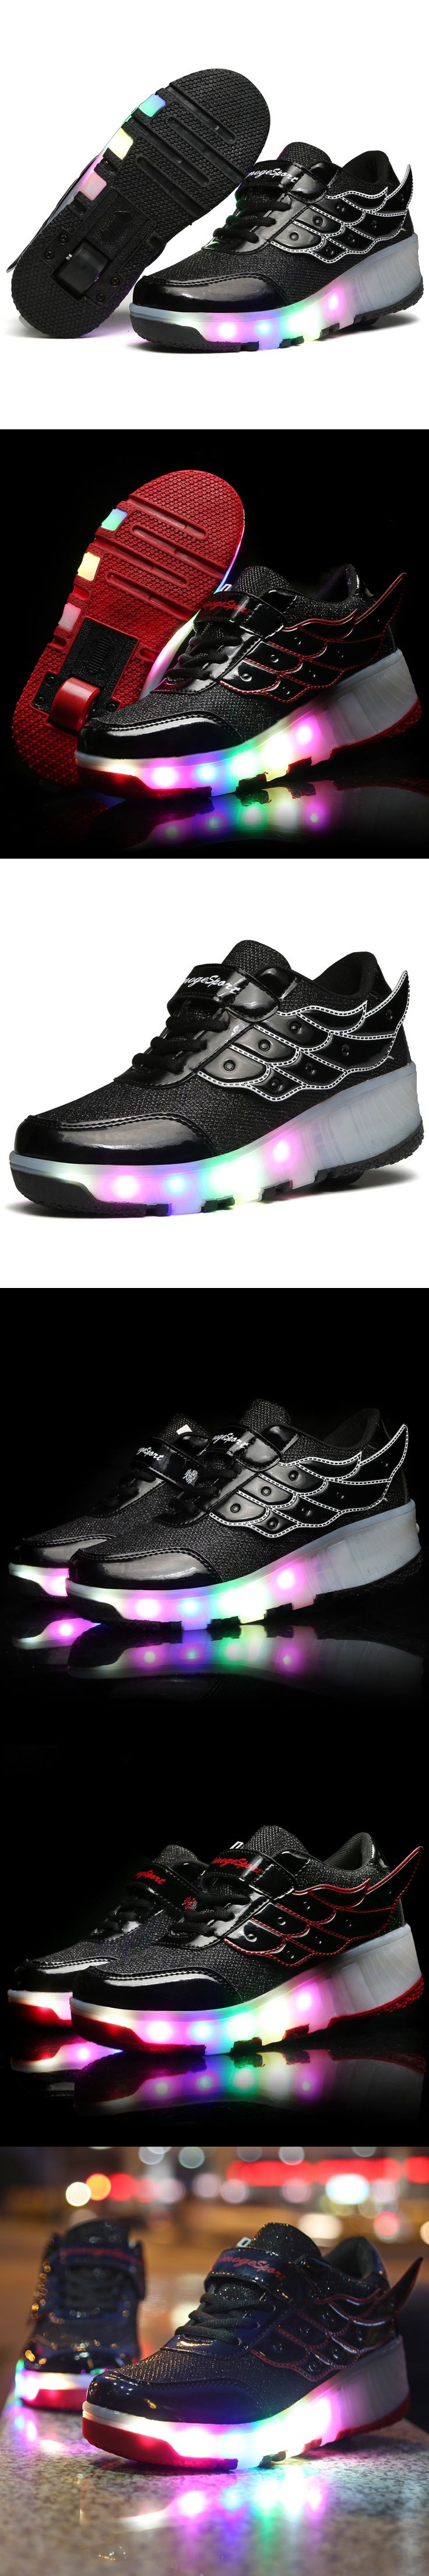 2016 Hot Brands New Arrived Children Heelys shoes Girls Boys Wing Led Light Sneakers Shoes With Wheel,Kids Roller Skate Shoes